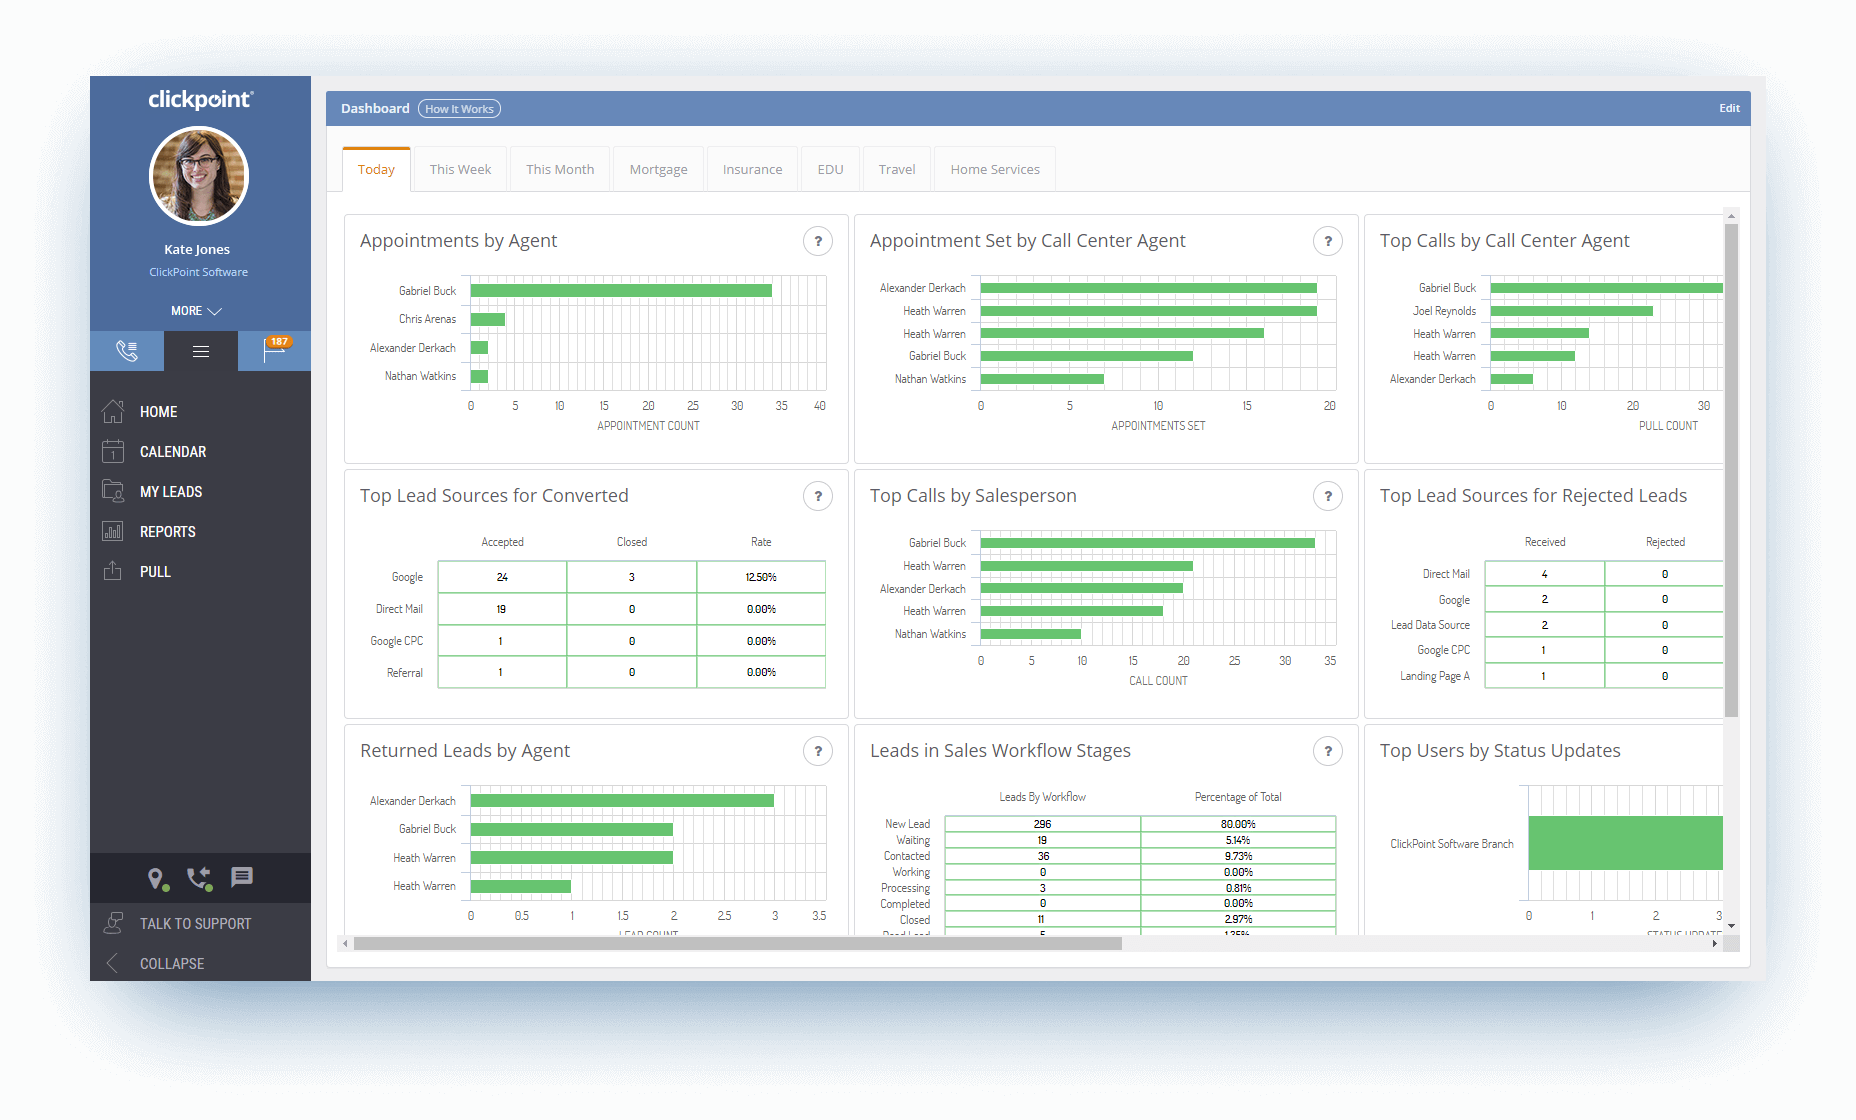 Marketing and Sales Performance Dashboard